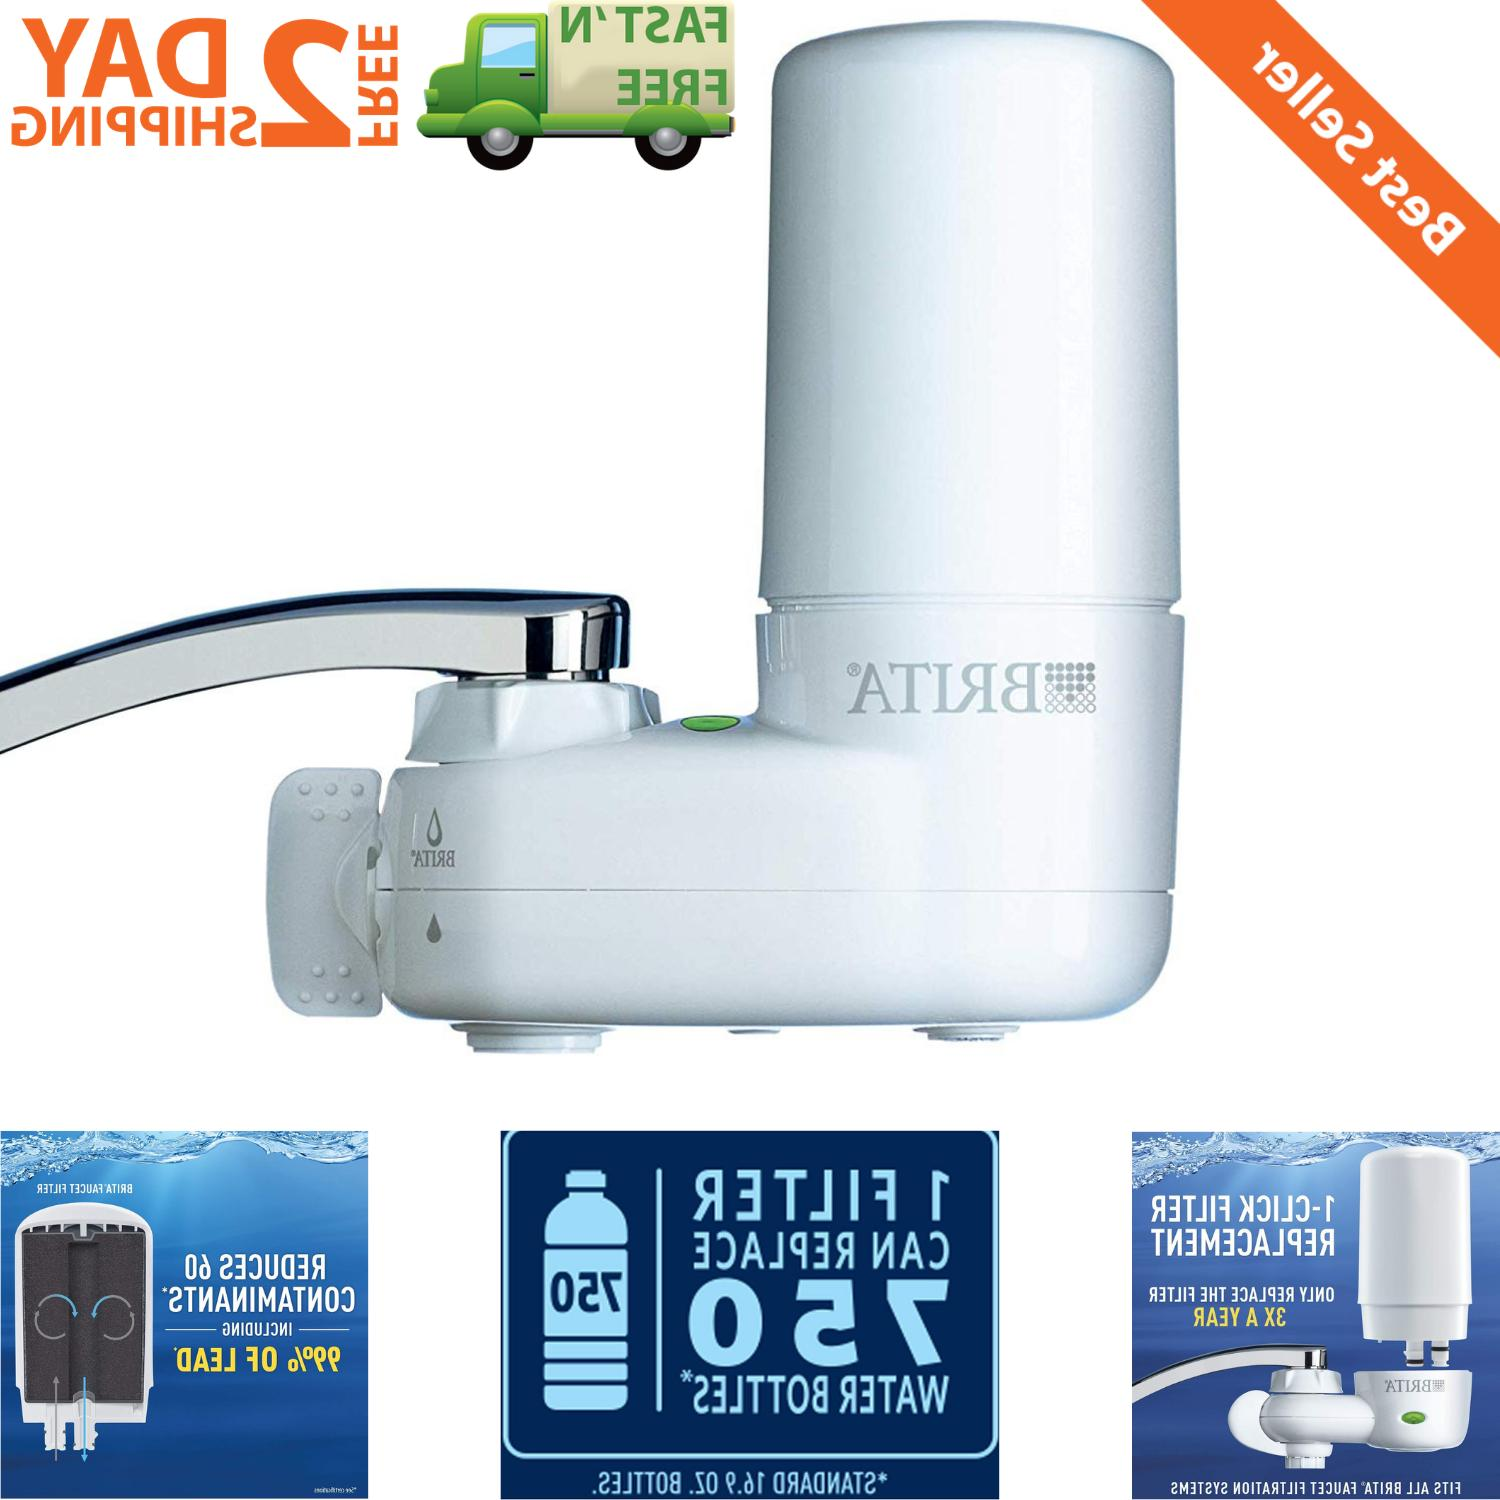 Water Faucet Filtration System Filter Change Reminder Tap Wa